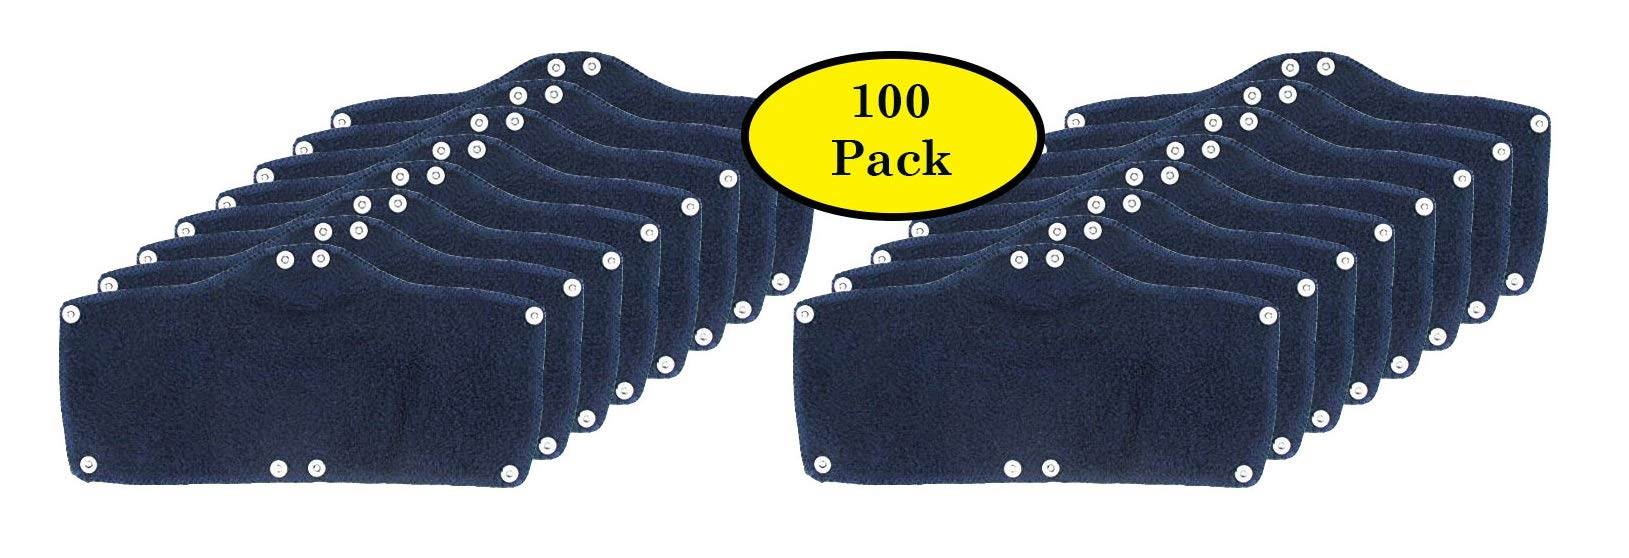 100 Pack Best Hard Hat Sweatband Navy Blue Washable Snap On Sweat Band Liner Safety Accessories